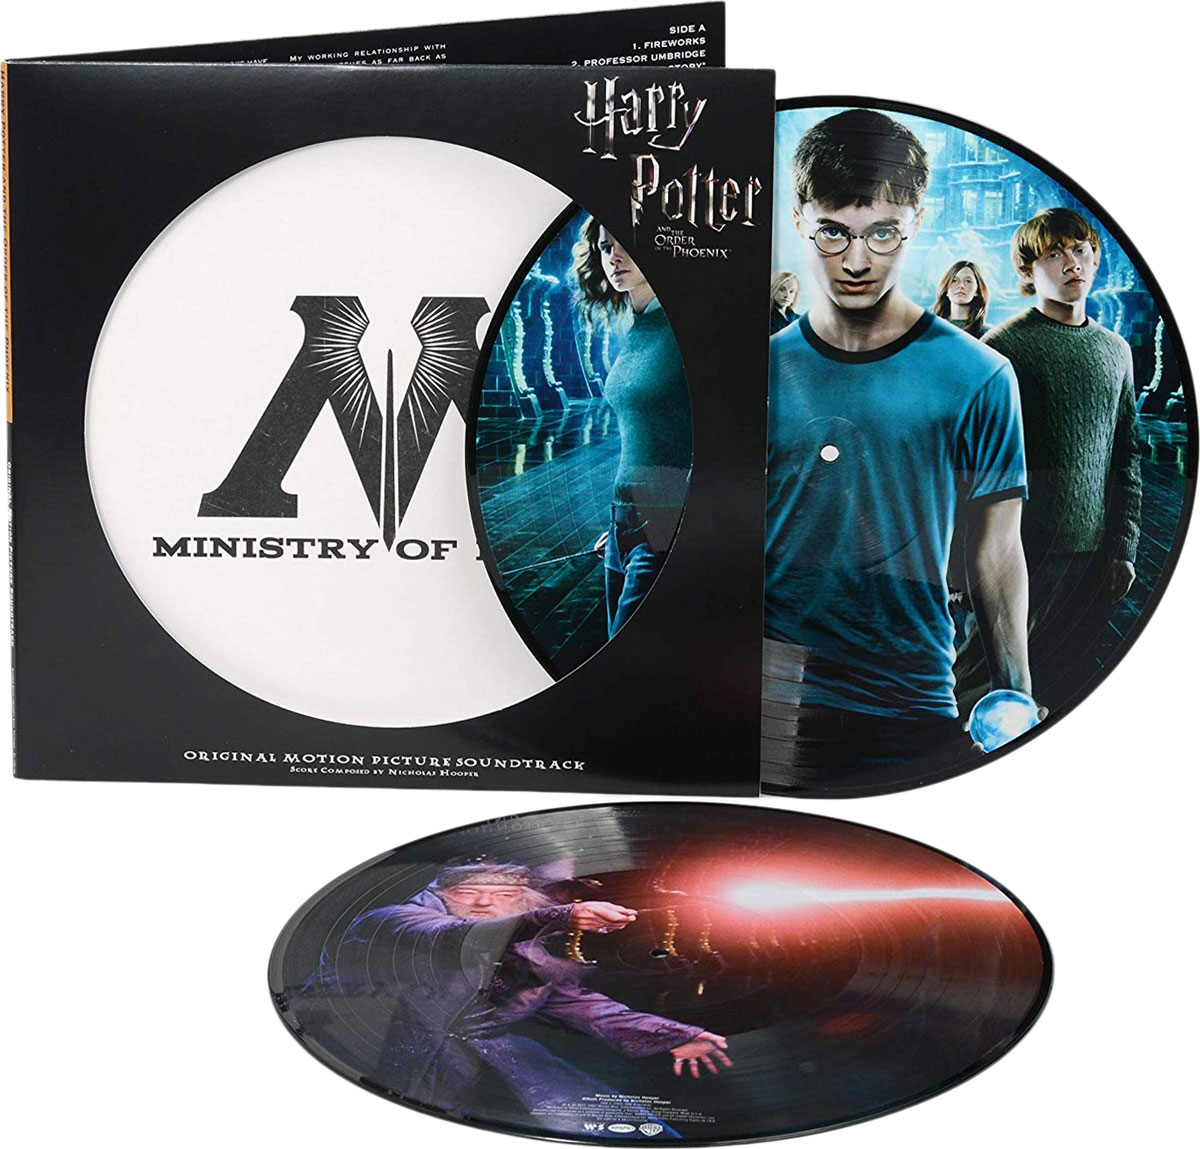 Nicholas Hooper. Harry Potter And The Order Of The Phoenix. Original Motion Picture Soundtrack (2 LP)